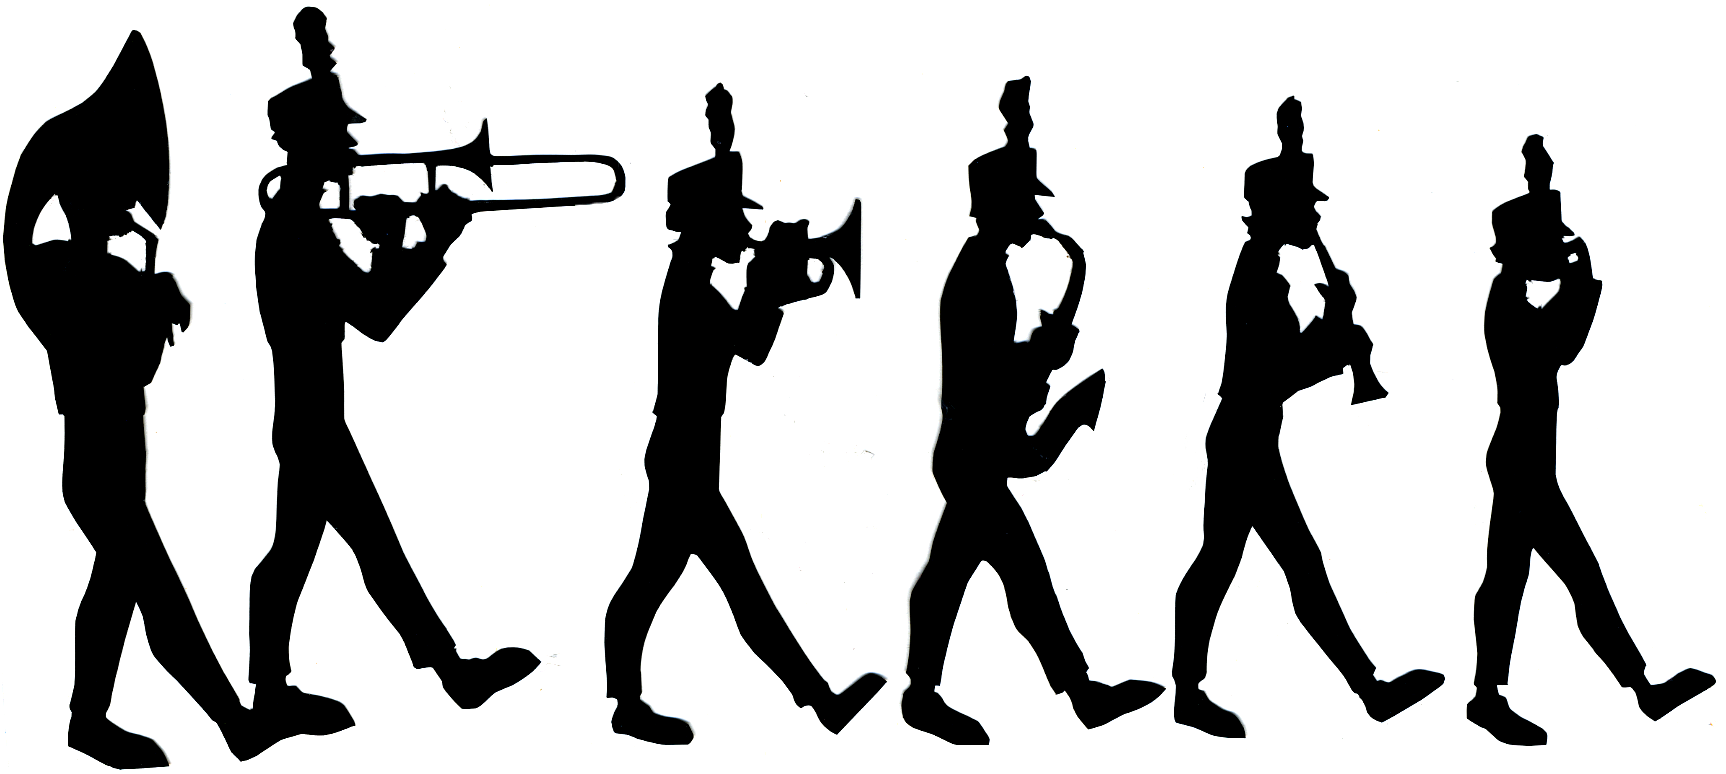 Band clipart soldier march. Marching silhouette at getdrawings